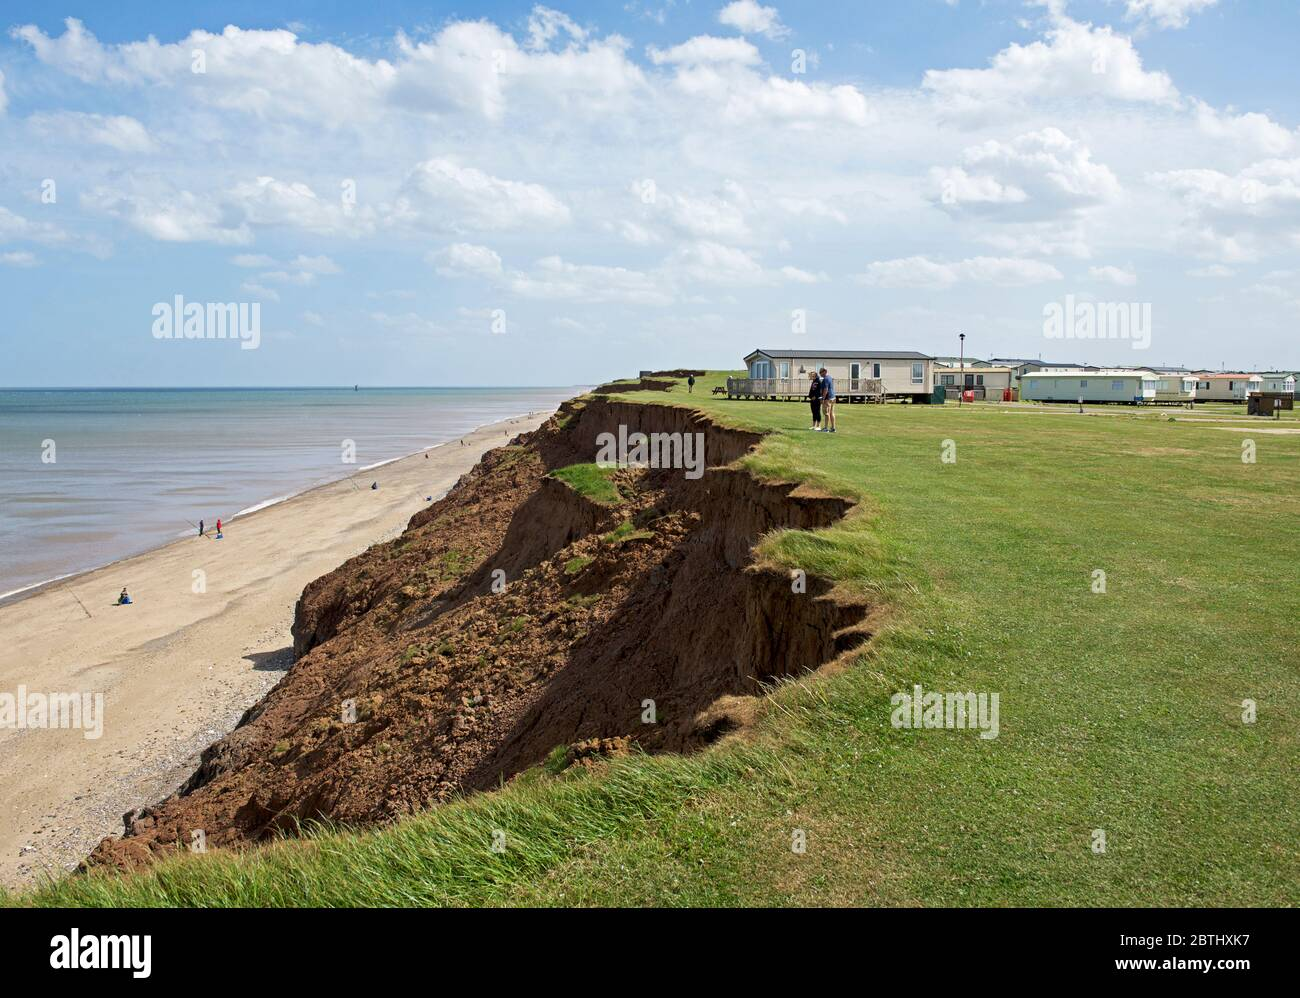 cliff-erosion-at-aldbrough-east-yorkshire-england-uk-2BTHXK7.jpg